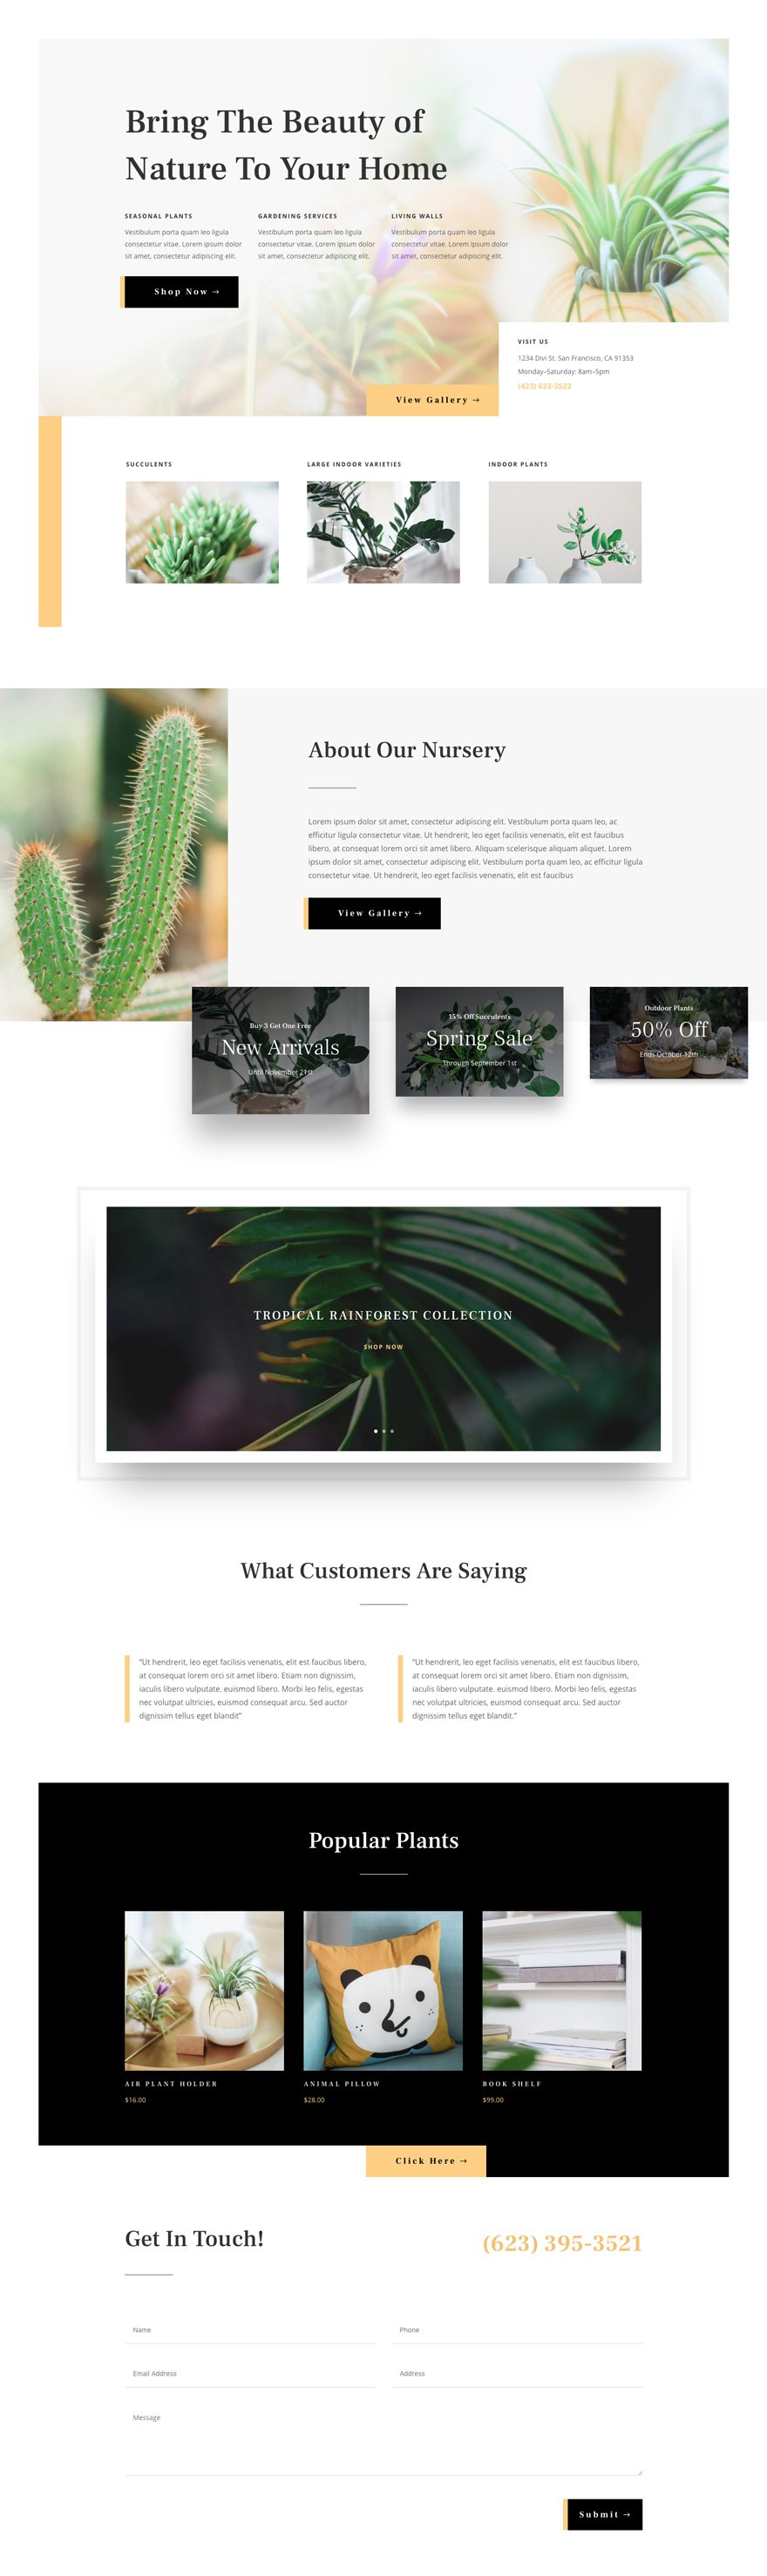 Plant Nursery Layout Pack For Divi